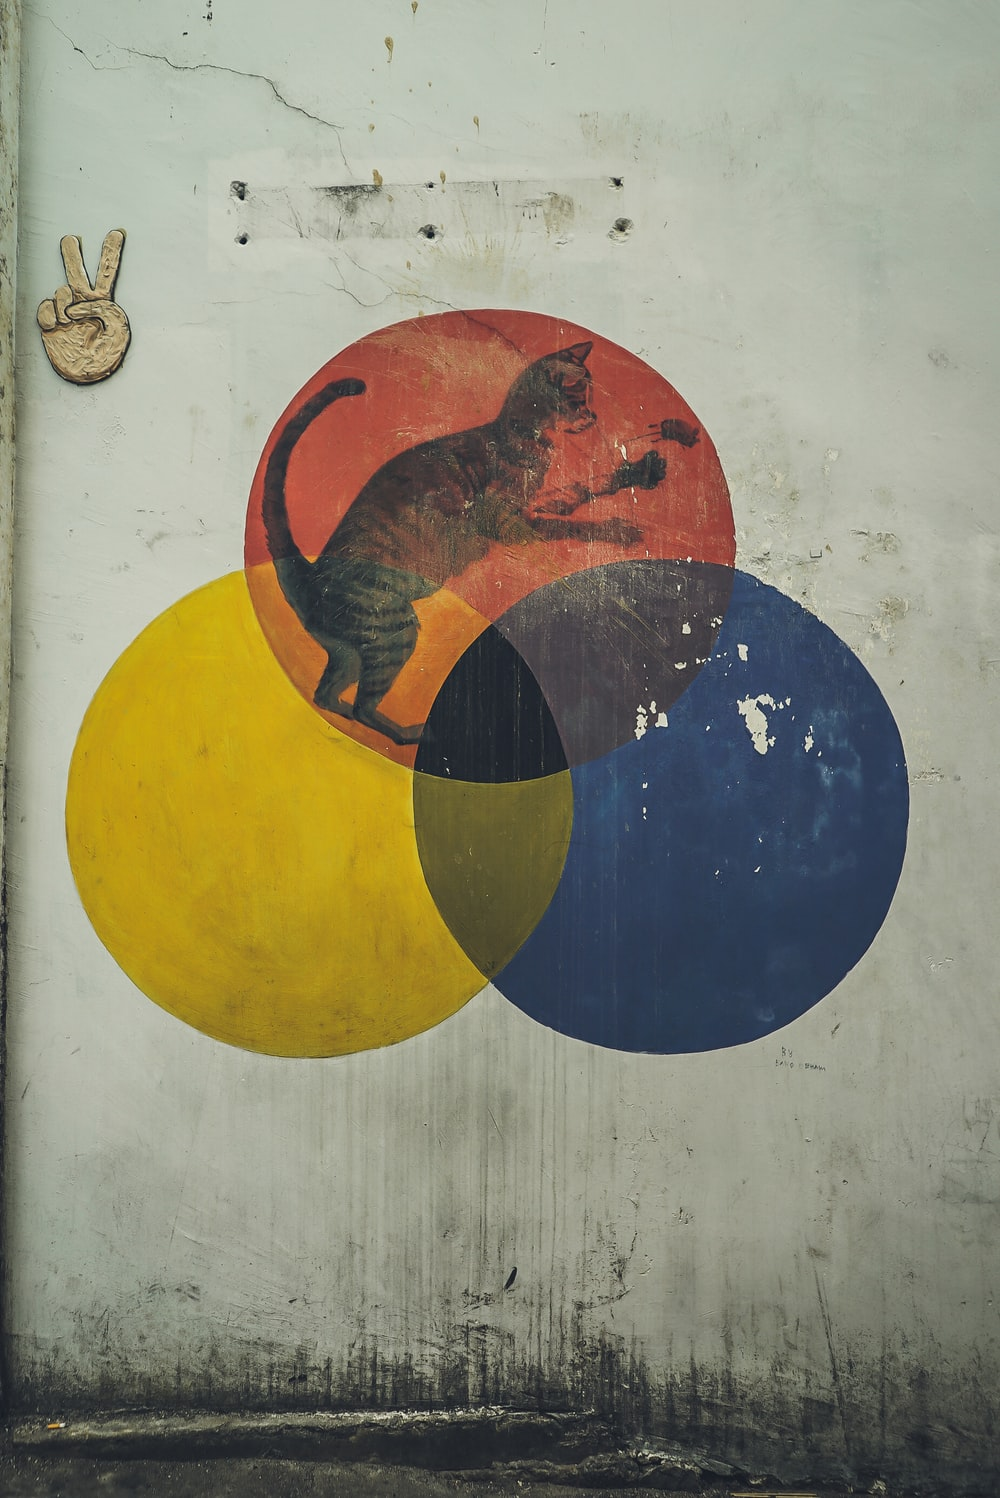 yellow, blue, and red circles with cat wall illustration